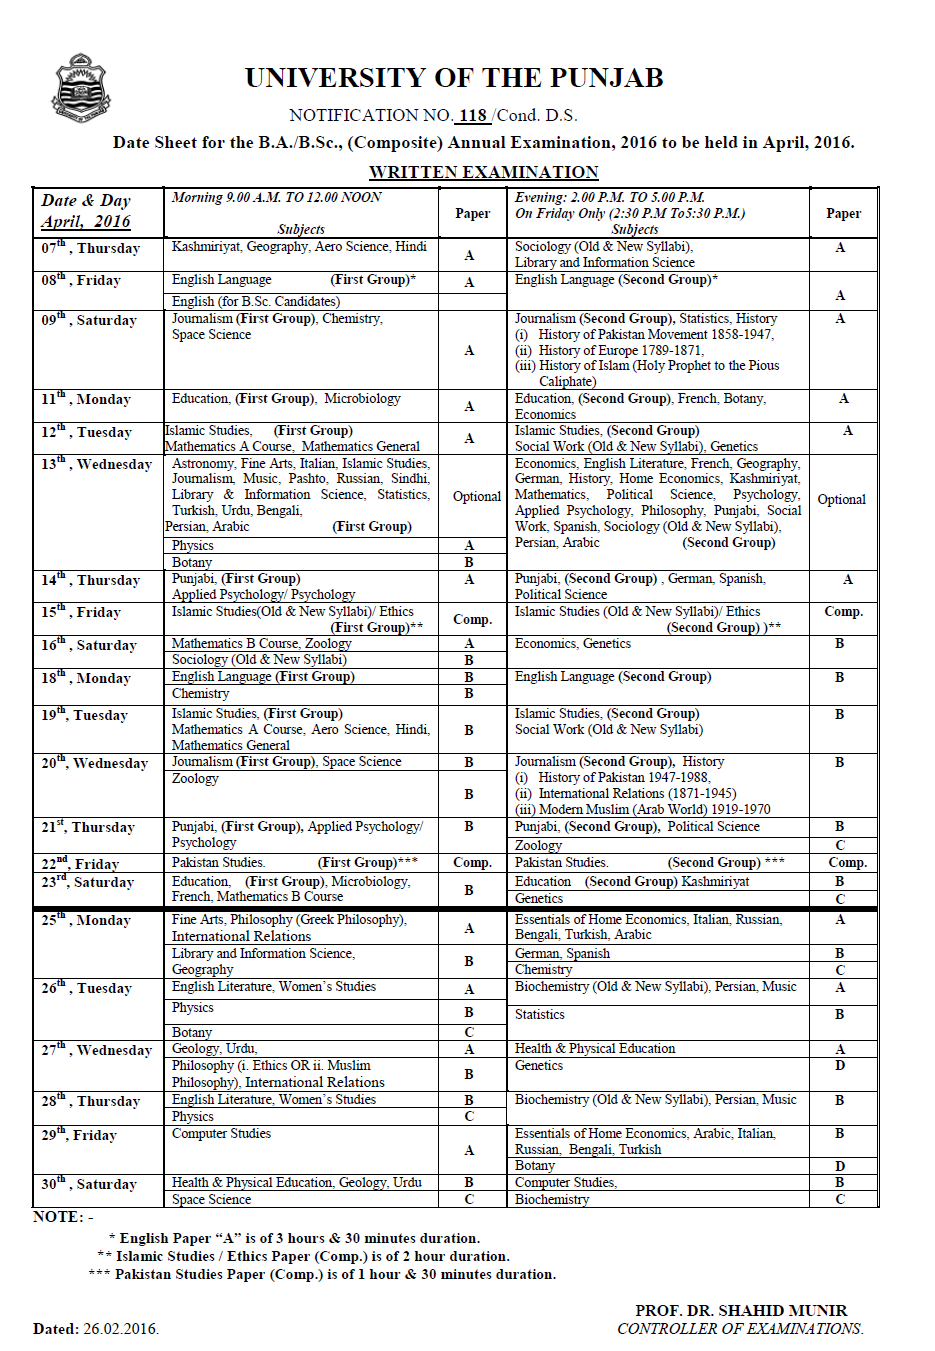 Punjab University PU BABSC Annual Exams Date Sheet 2016